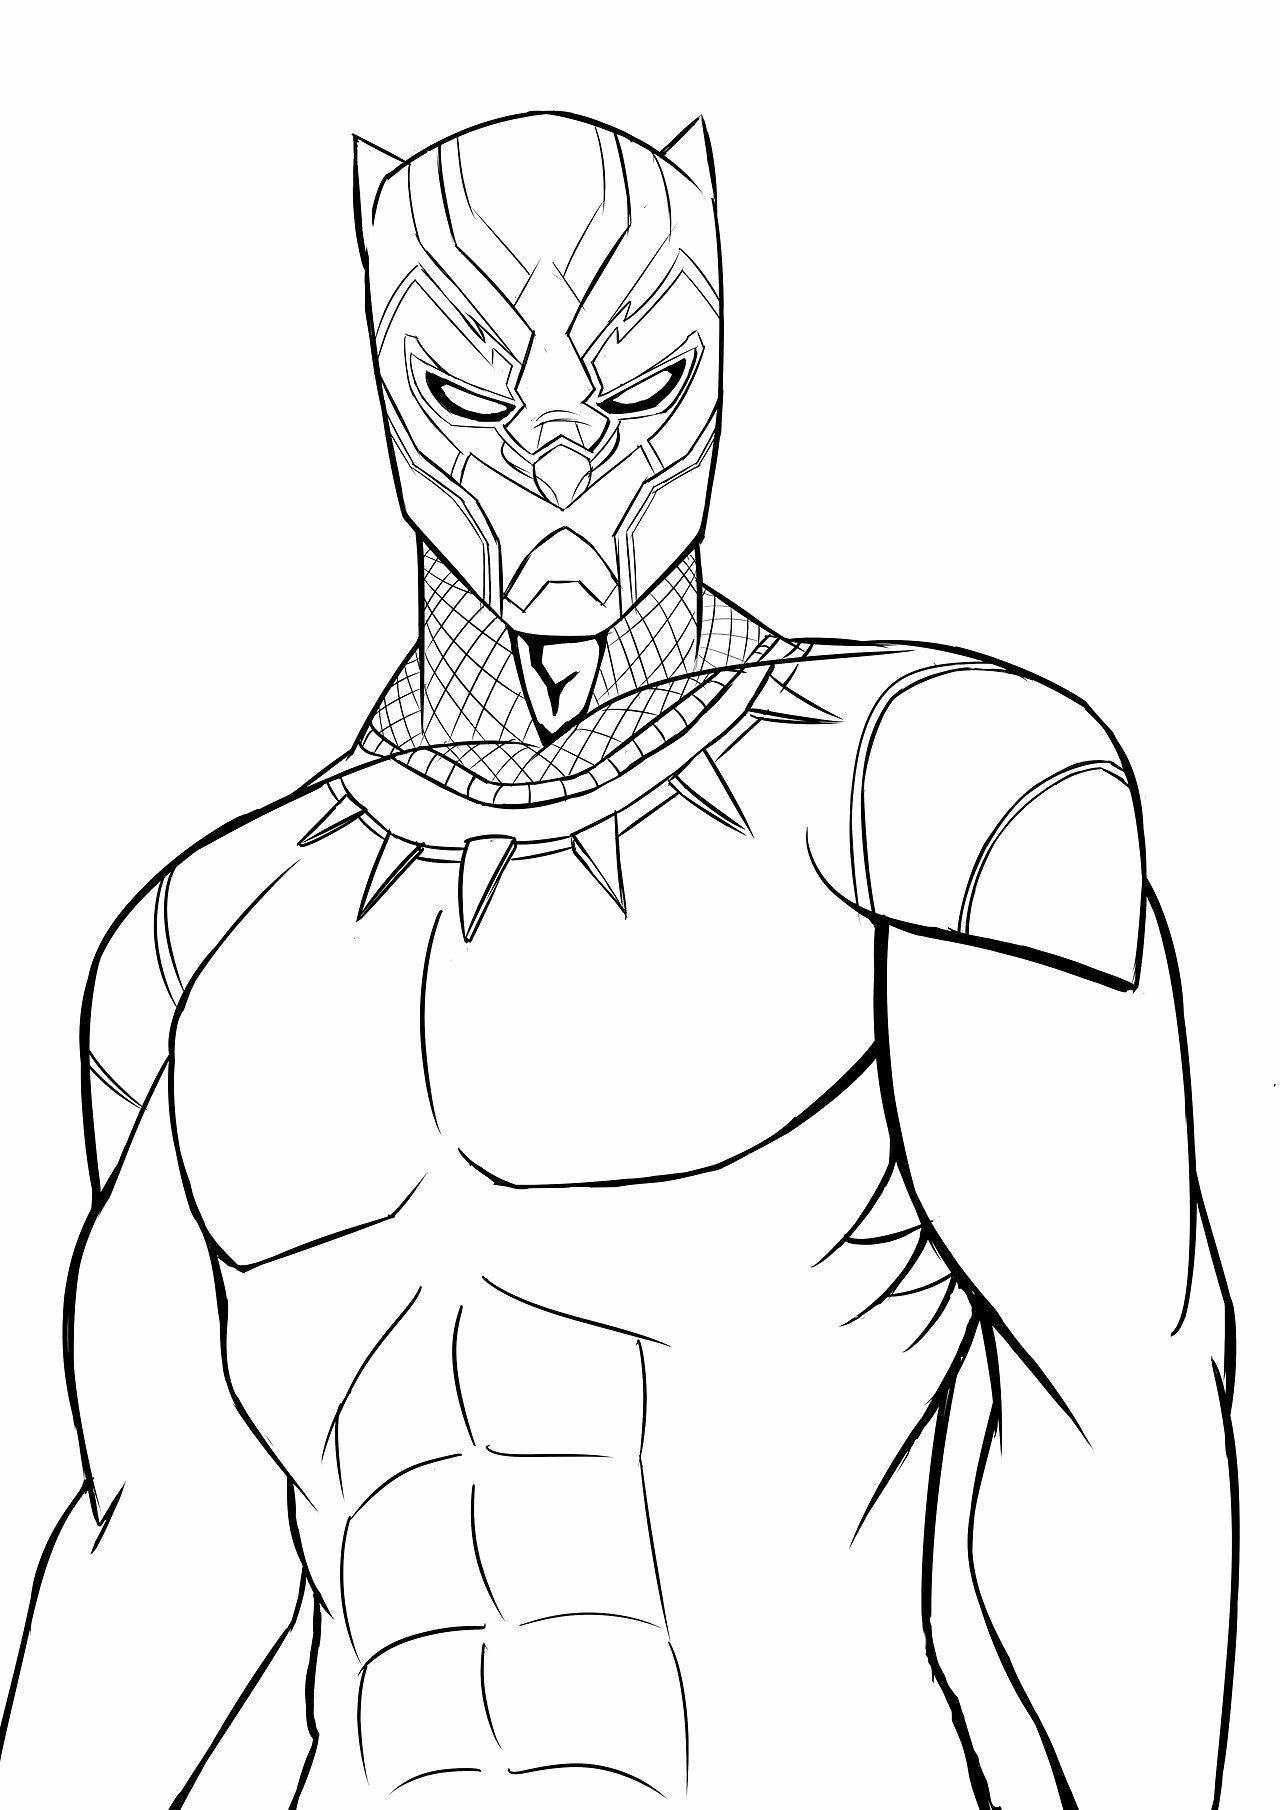 21 Black Panther Coloring Book in 2020 (With images)   Superhero ...